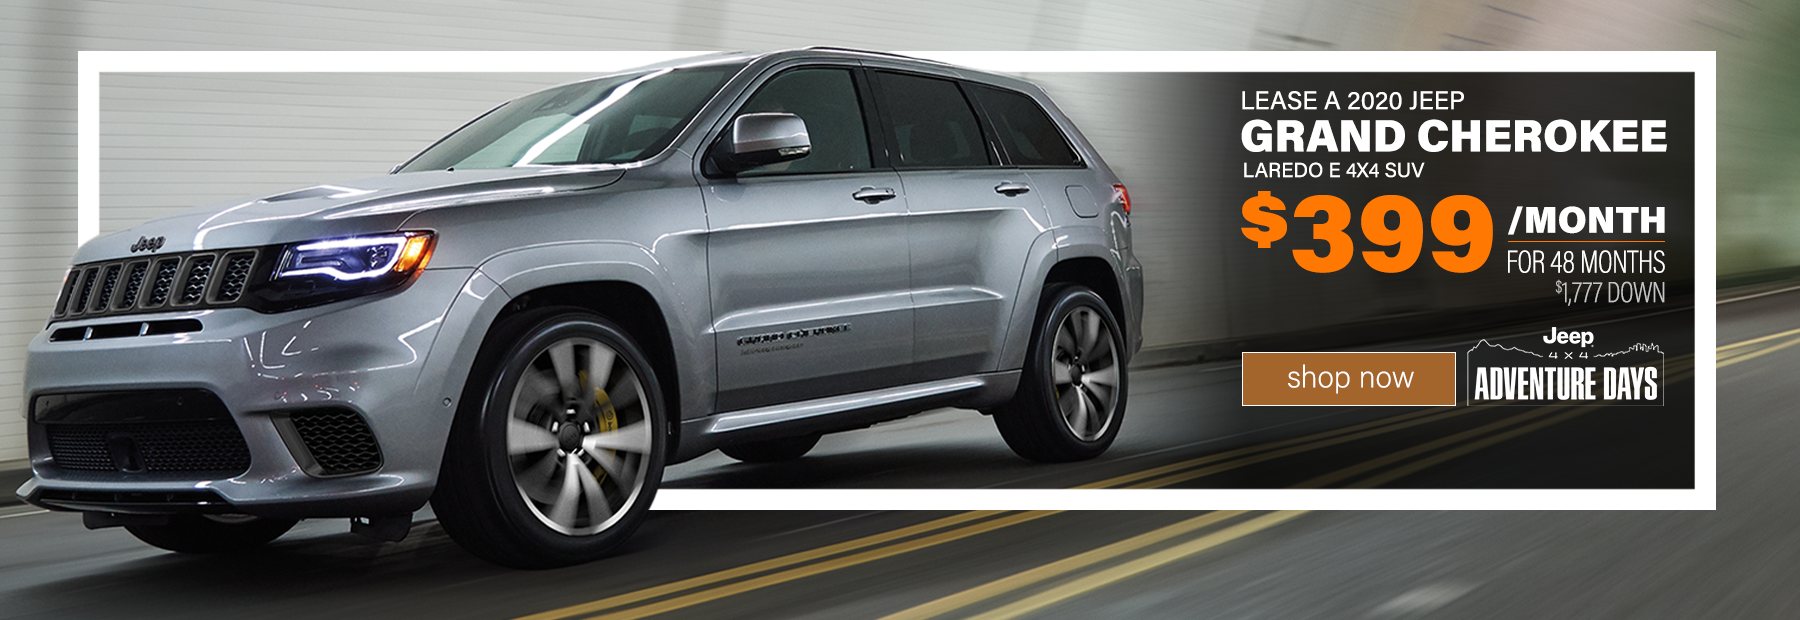 new-2020-jeep-grand-cherokee-lease-deal-dayton-oh